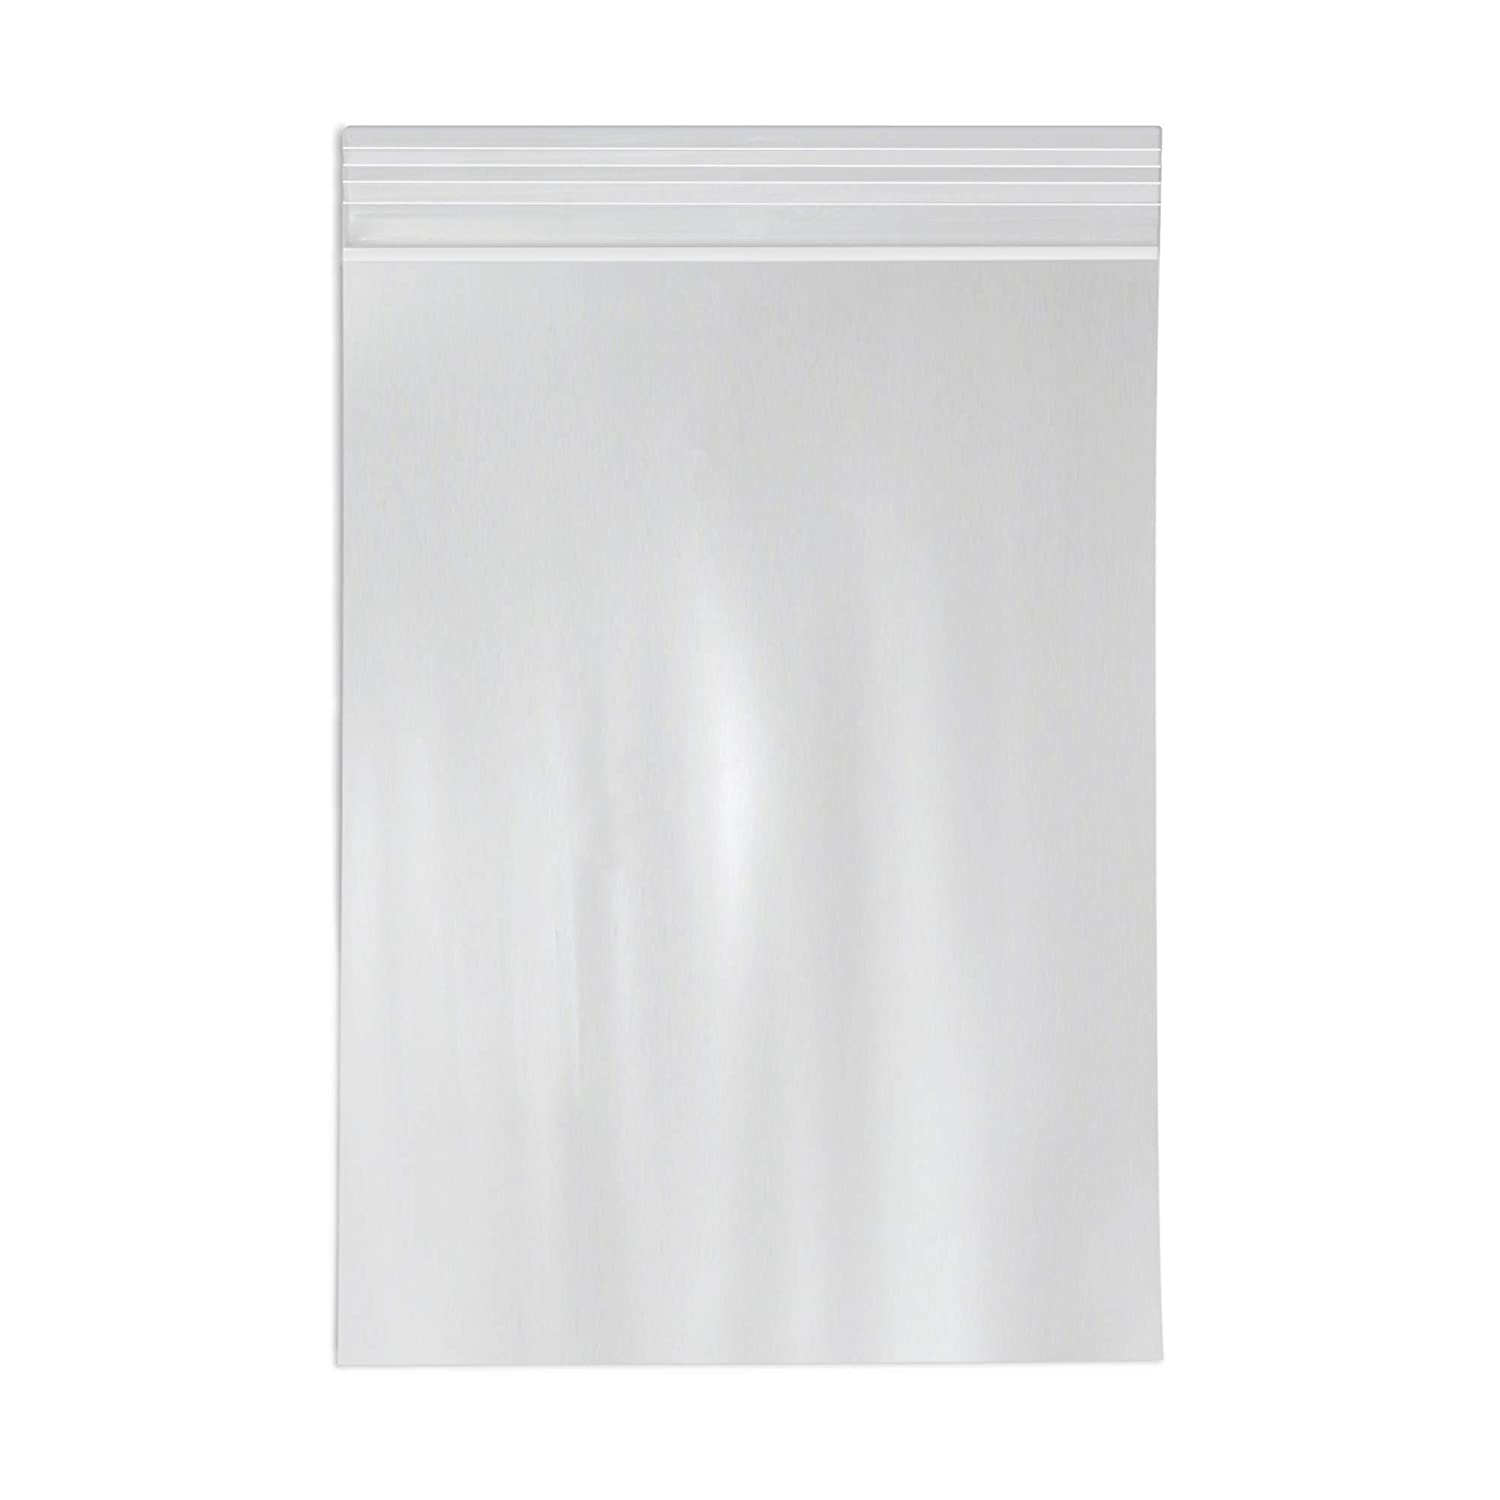 """10"""" x 13"""" Clear Zip Reclosable Poly Bags by SPC, 500 Count - Multiple Sizes Available - Strong Resealable Lock Seal - 2 Mil"""